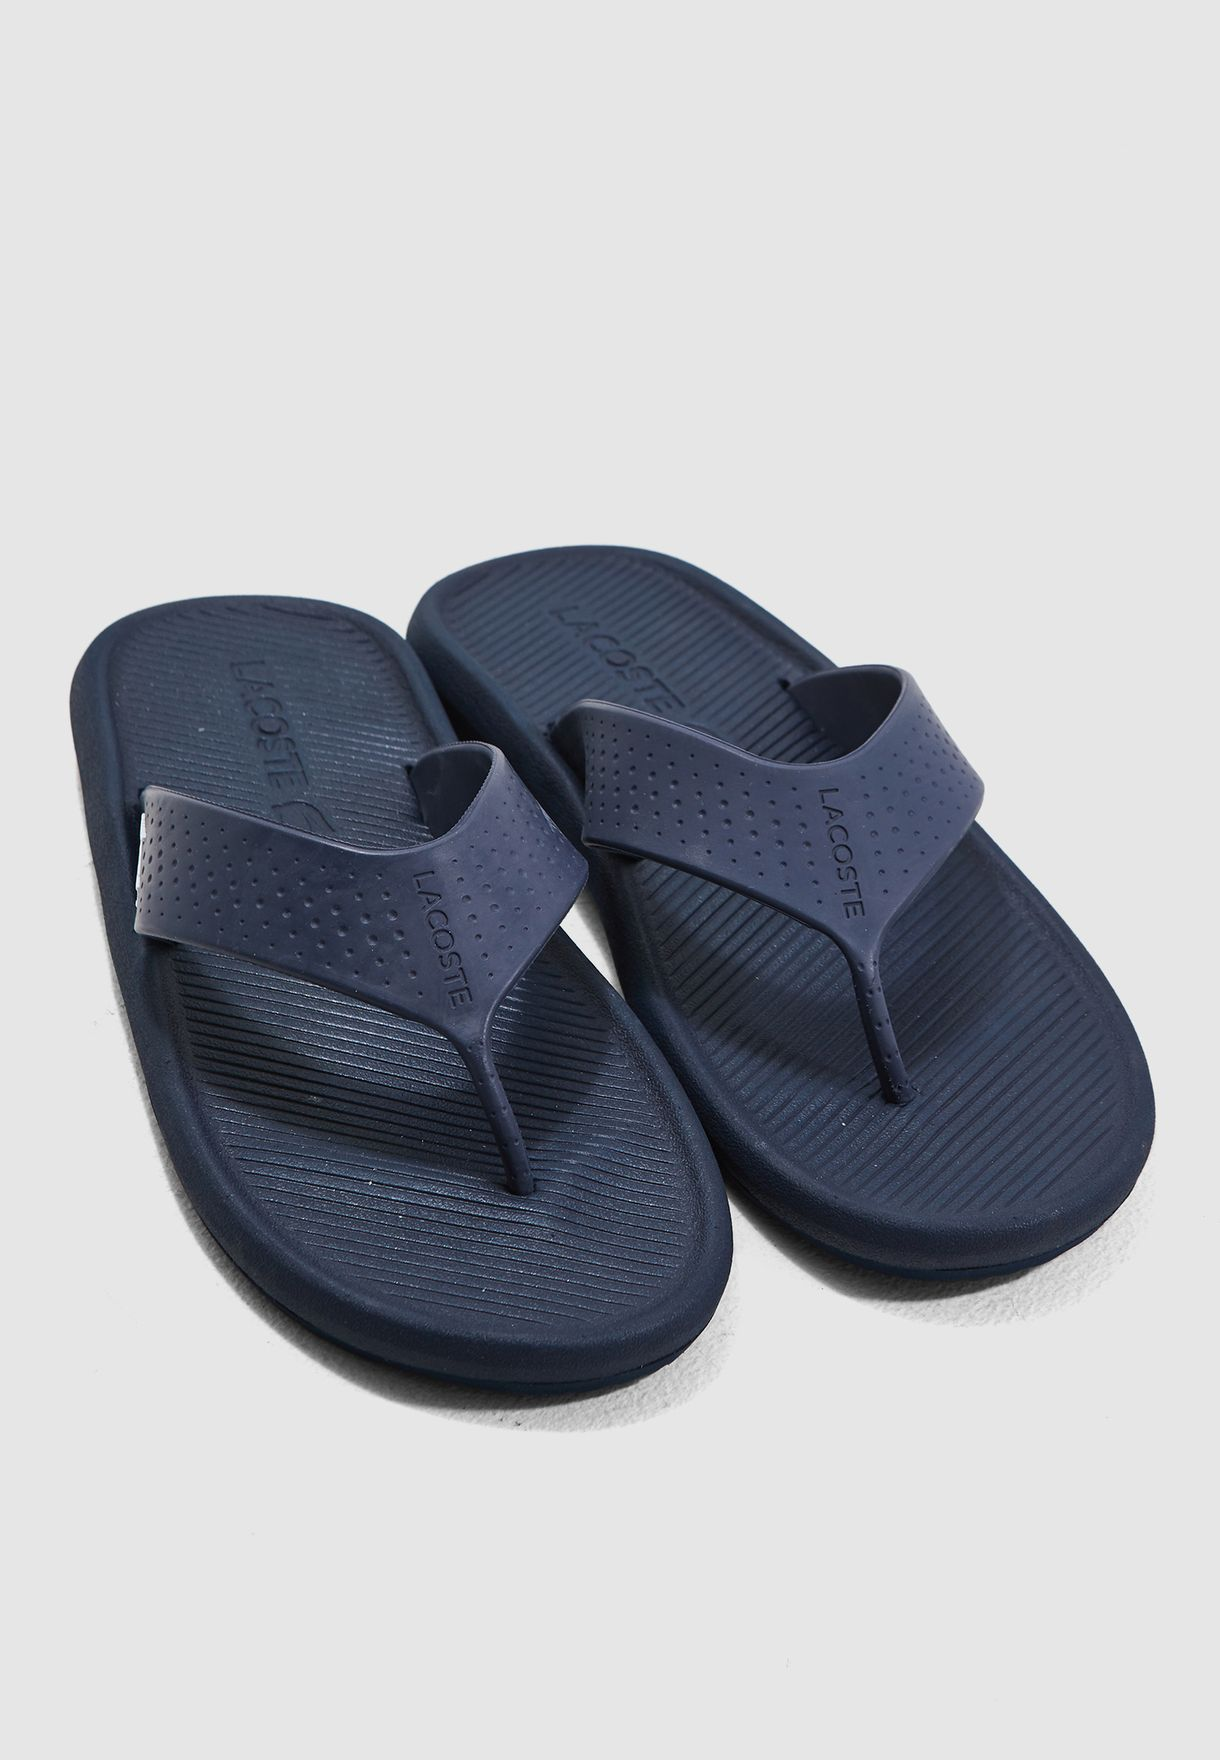 c0545f2c7 Shop Lacoste navy Croco Flip Flops 37CMA0015-092 for Men in Oman ...